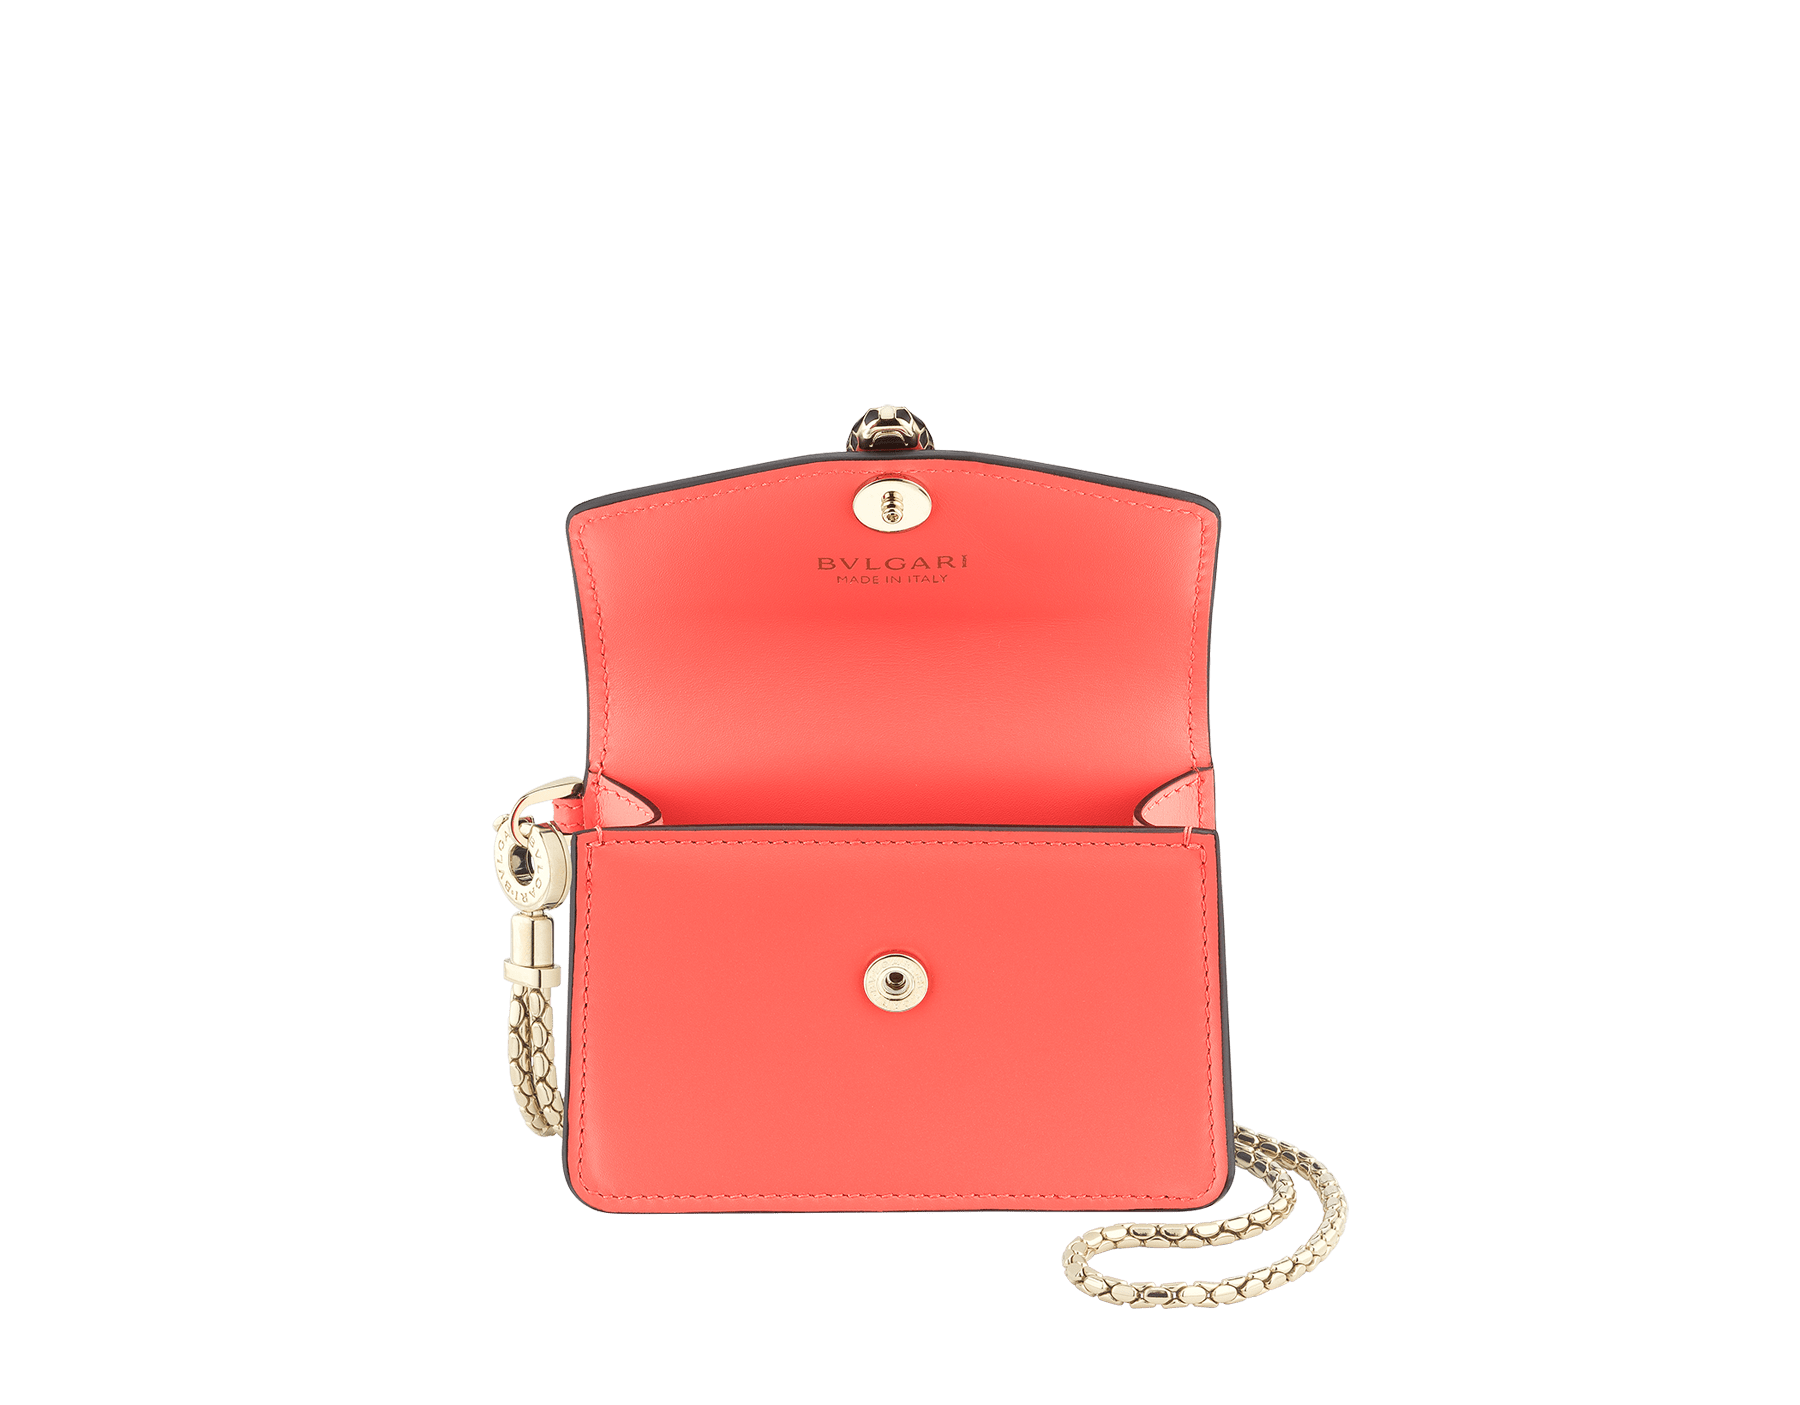 Serpenti Forever neck credit card holder in silky coral calf leather. Iconic snakehead closure in black and white enamel, with green enamel eyes. 289100 image 2